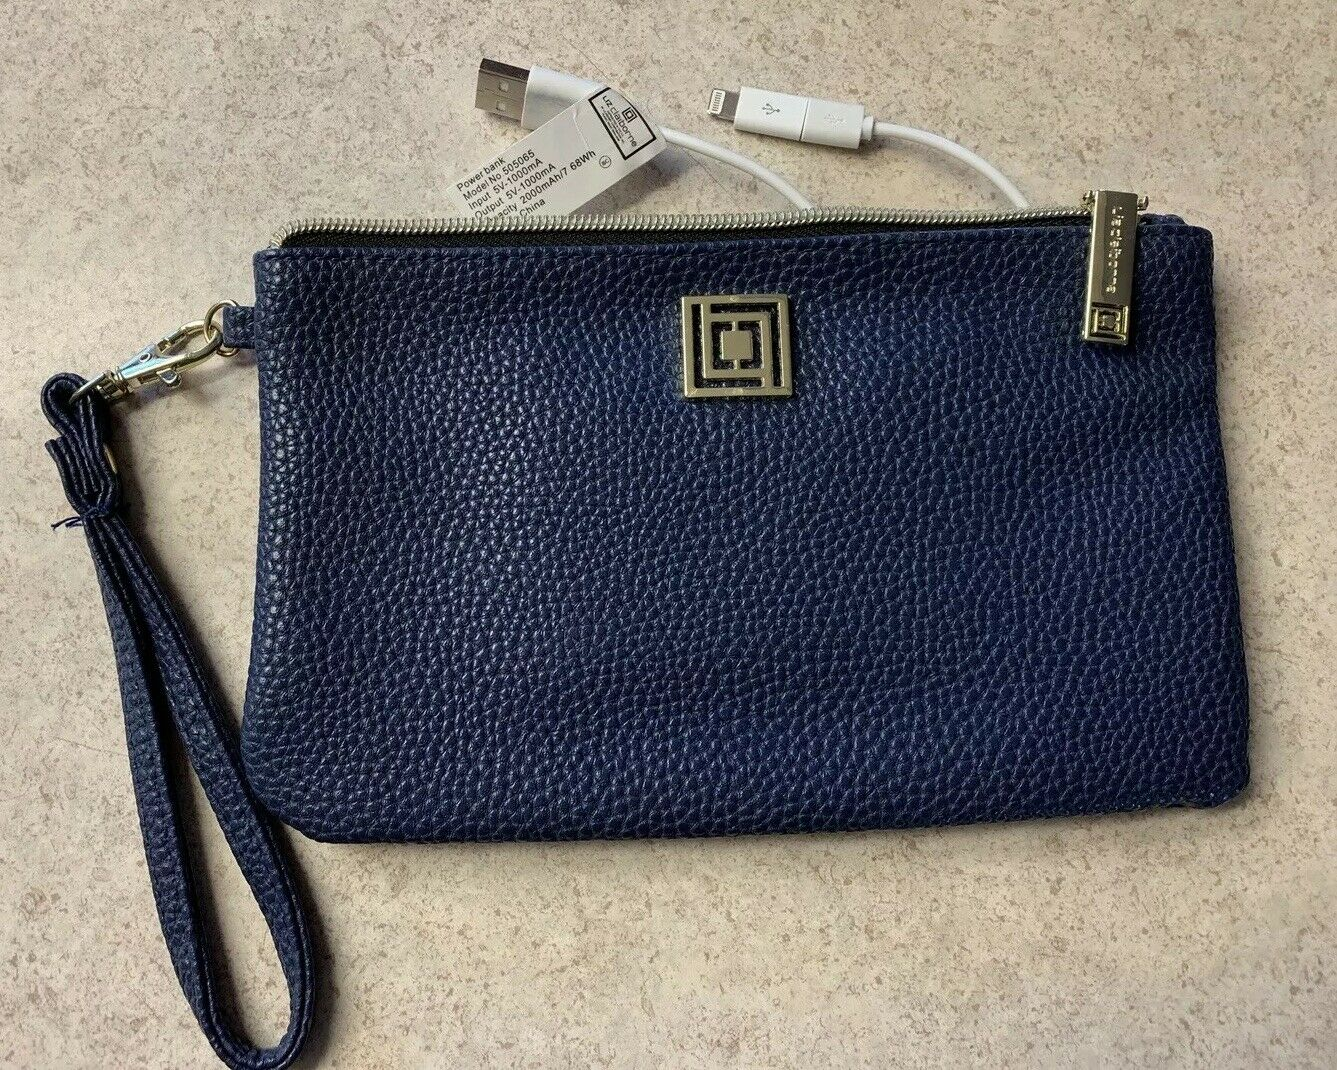 Phone Charging Wallet Liz Claiborne, iphone android- NAVY BLUE, 8.5x5